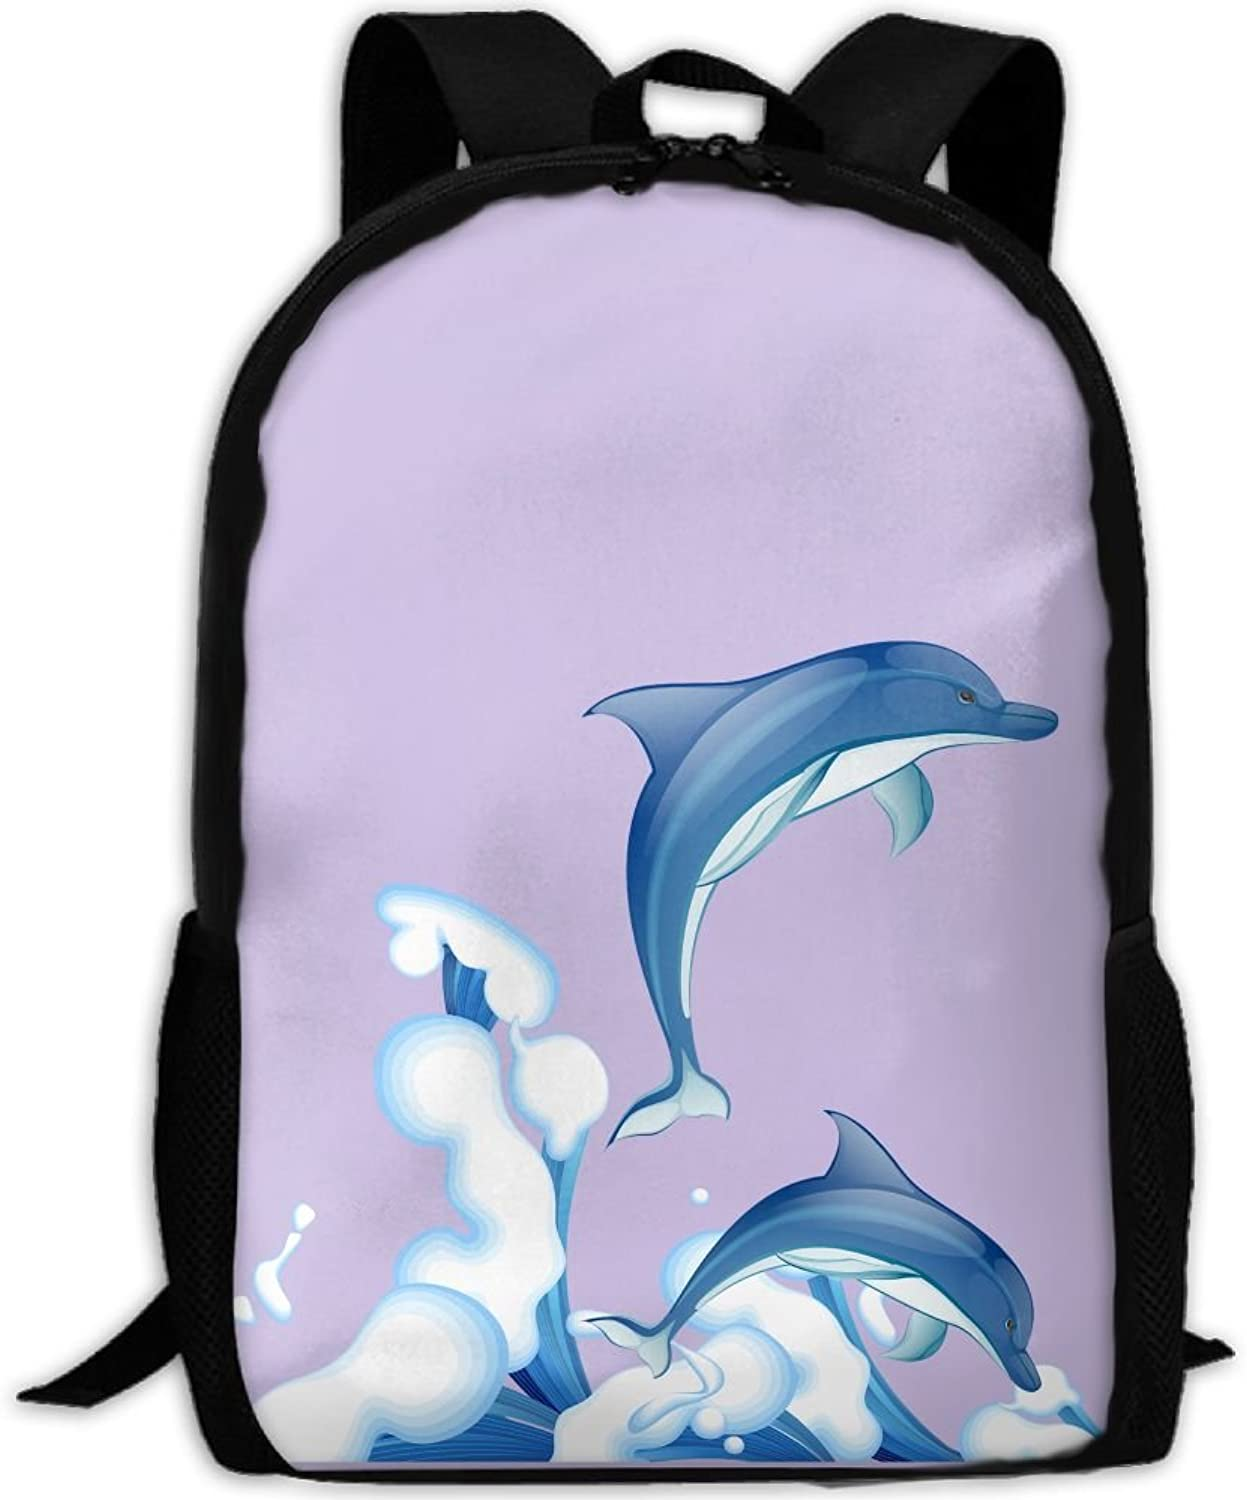 Adult Backpack bluee Dolphin Jumping College Daypack Oxford Bag Unisex Business Travel Sports Bag With Adjustable Strap